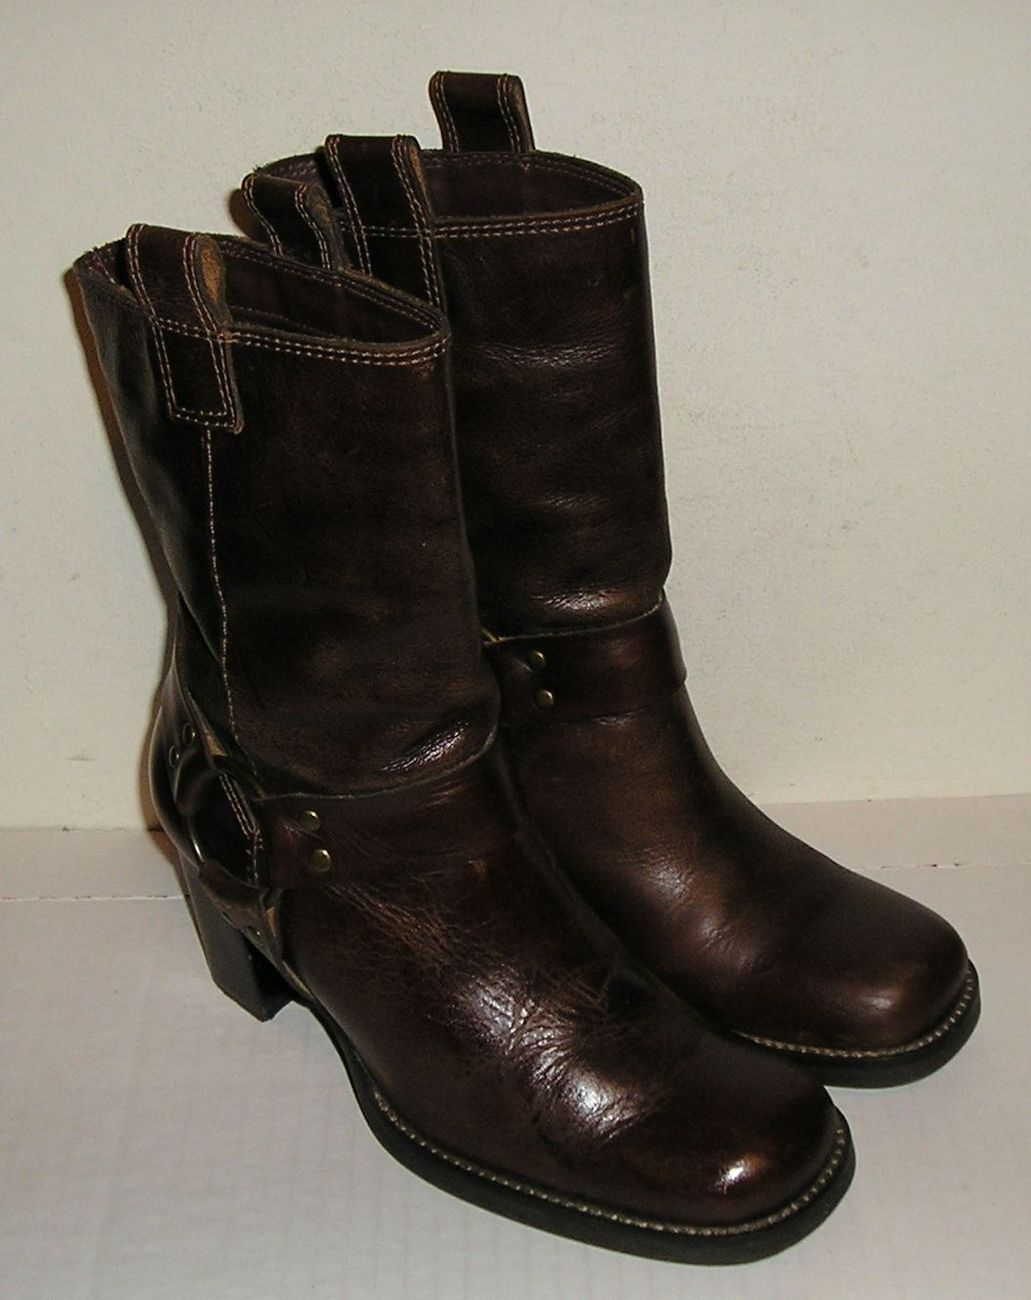 Mia women s brown leather riding boots 6.5 m   1